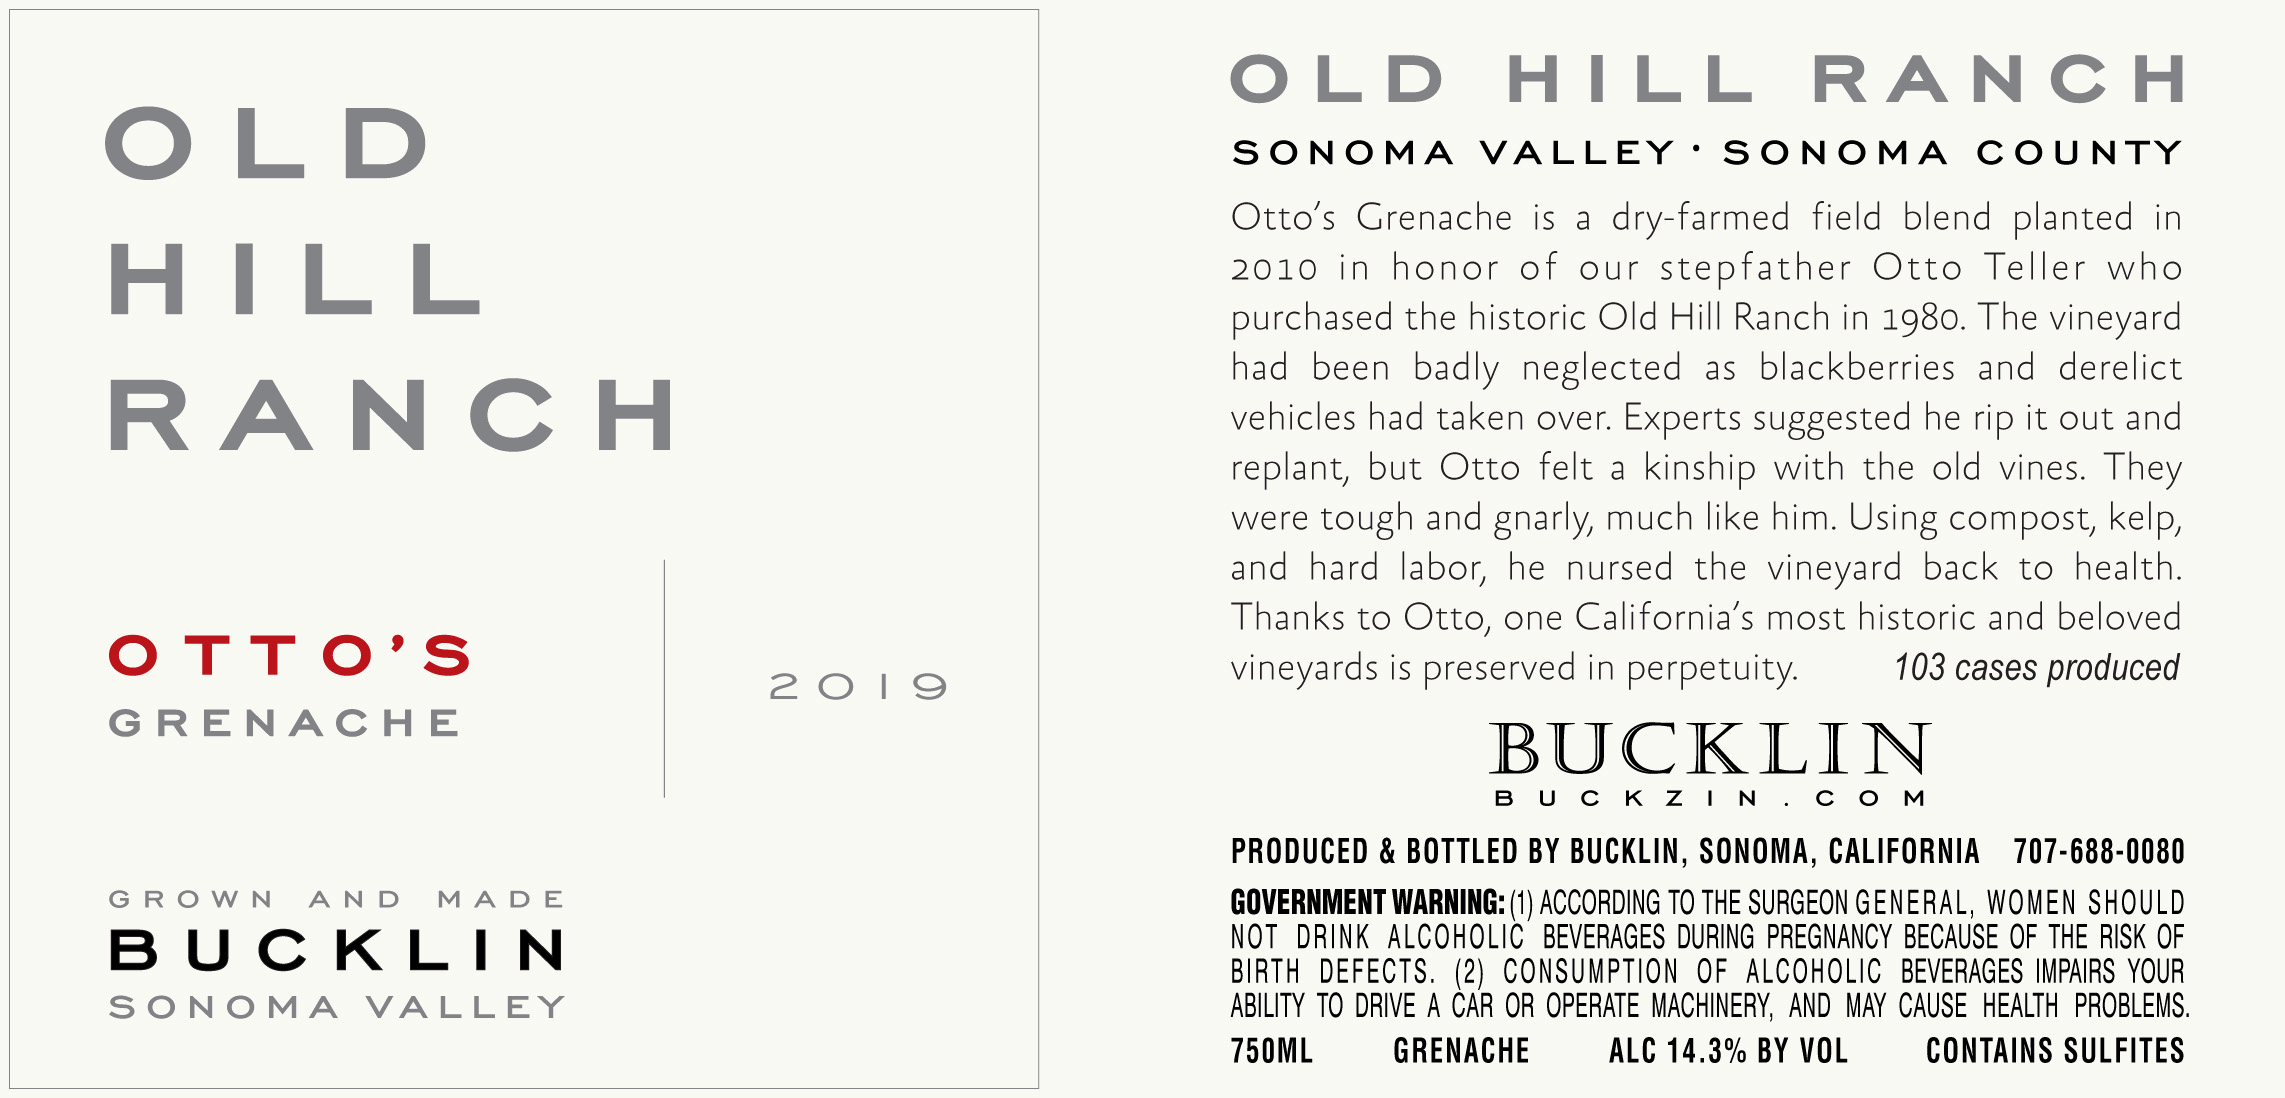 2019 Otto's Grenache Old Hill Ranch - Bucklin Old Hill Ranch